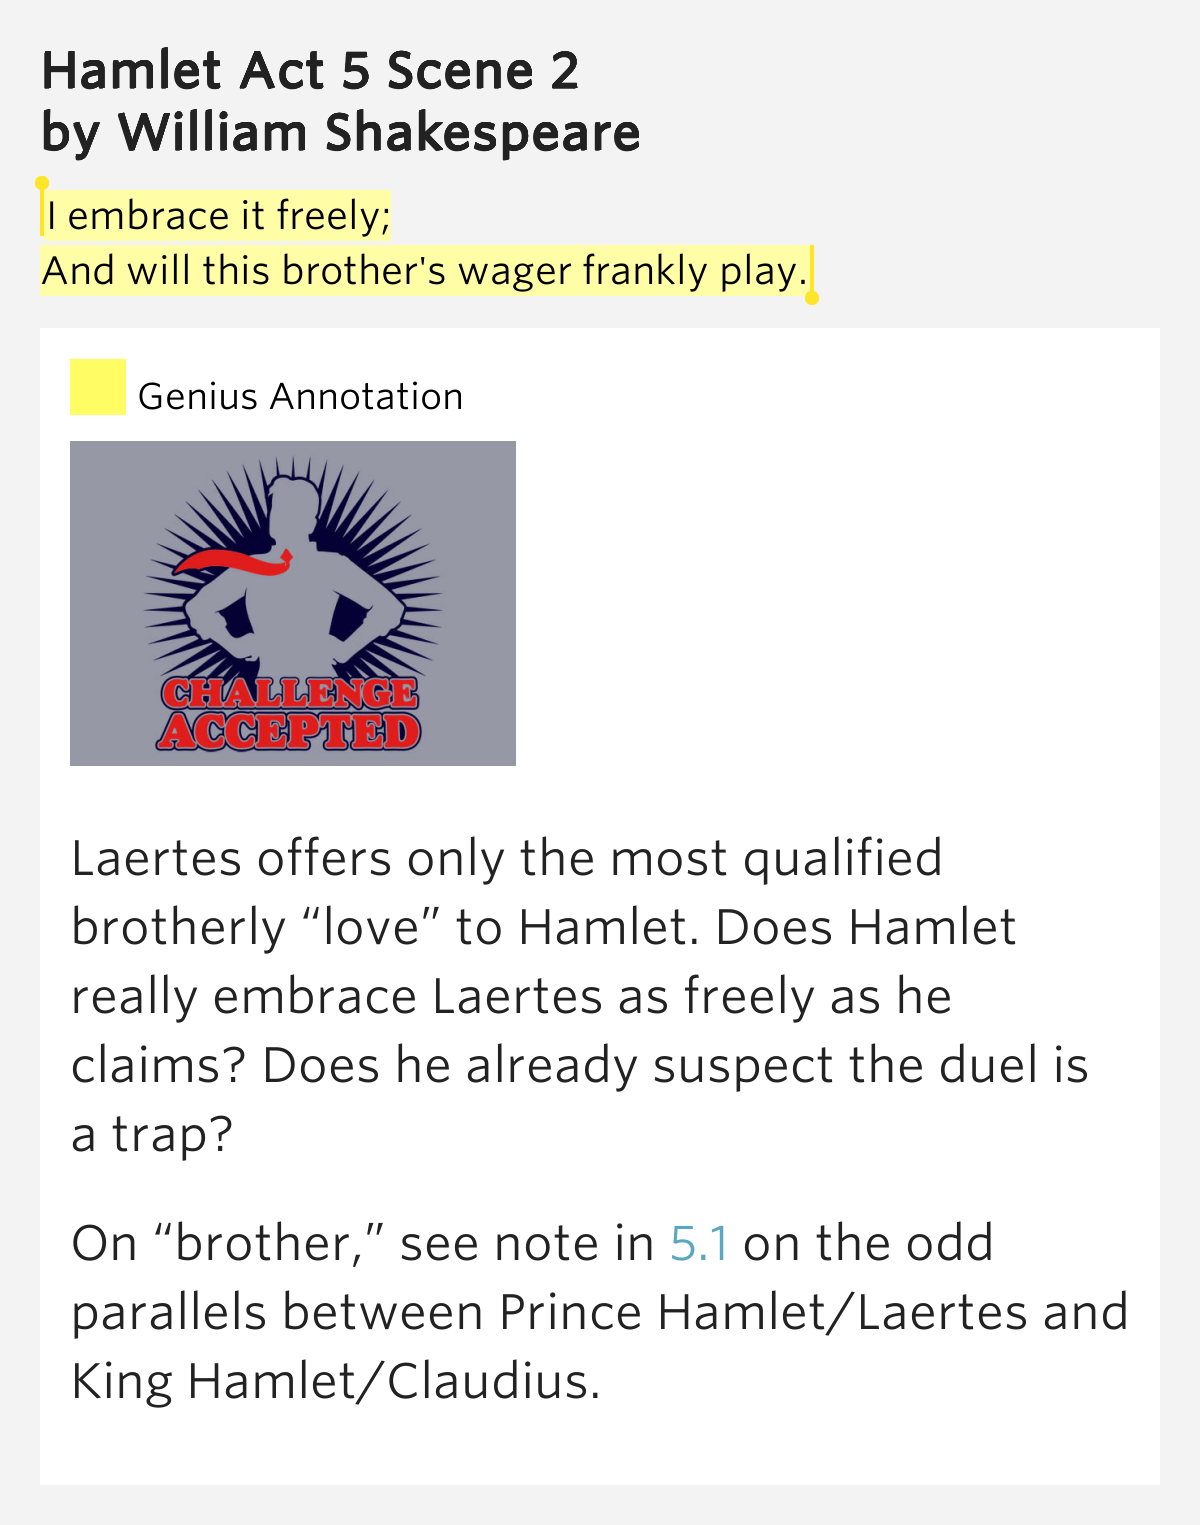 contrasting between laertes and hamlet in the play hamlet Home hamlet q & a what what contrasts are brought out between the characters of hamlet and laertes the largest contrast between these two characters can.